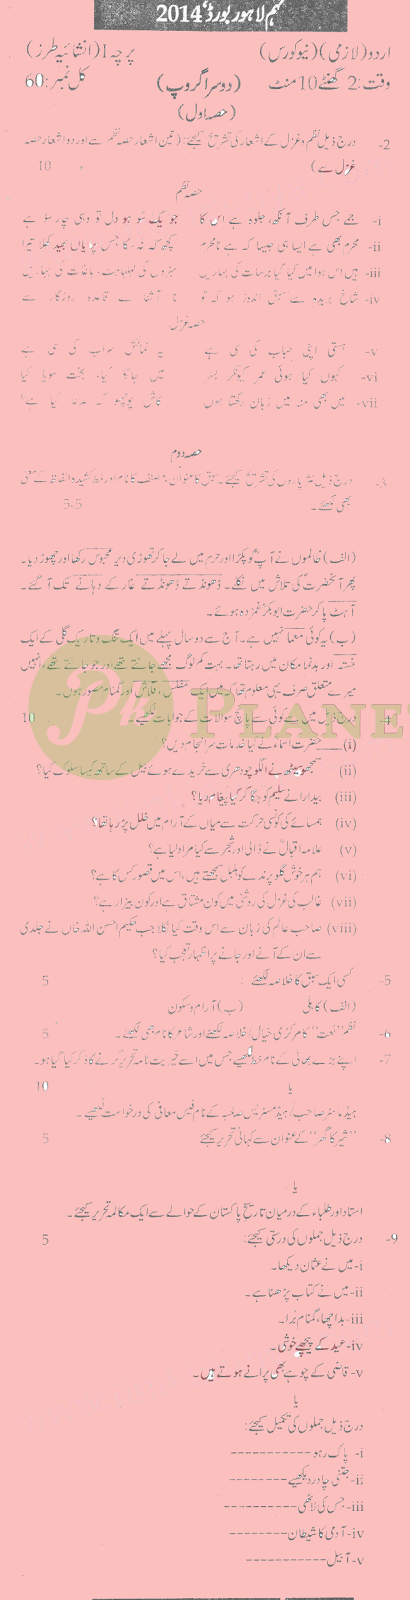 Past Papers of 9th Class Lahore Board 2014 Urdu